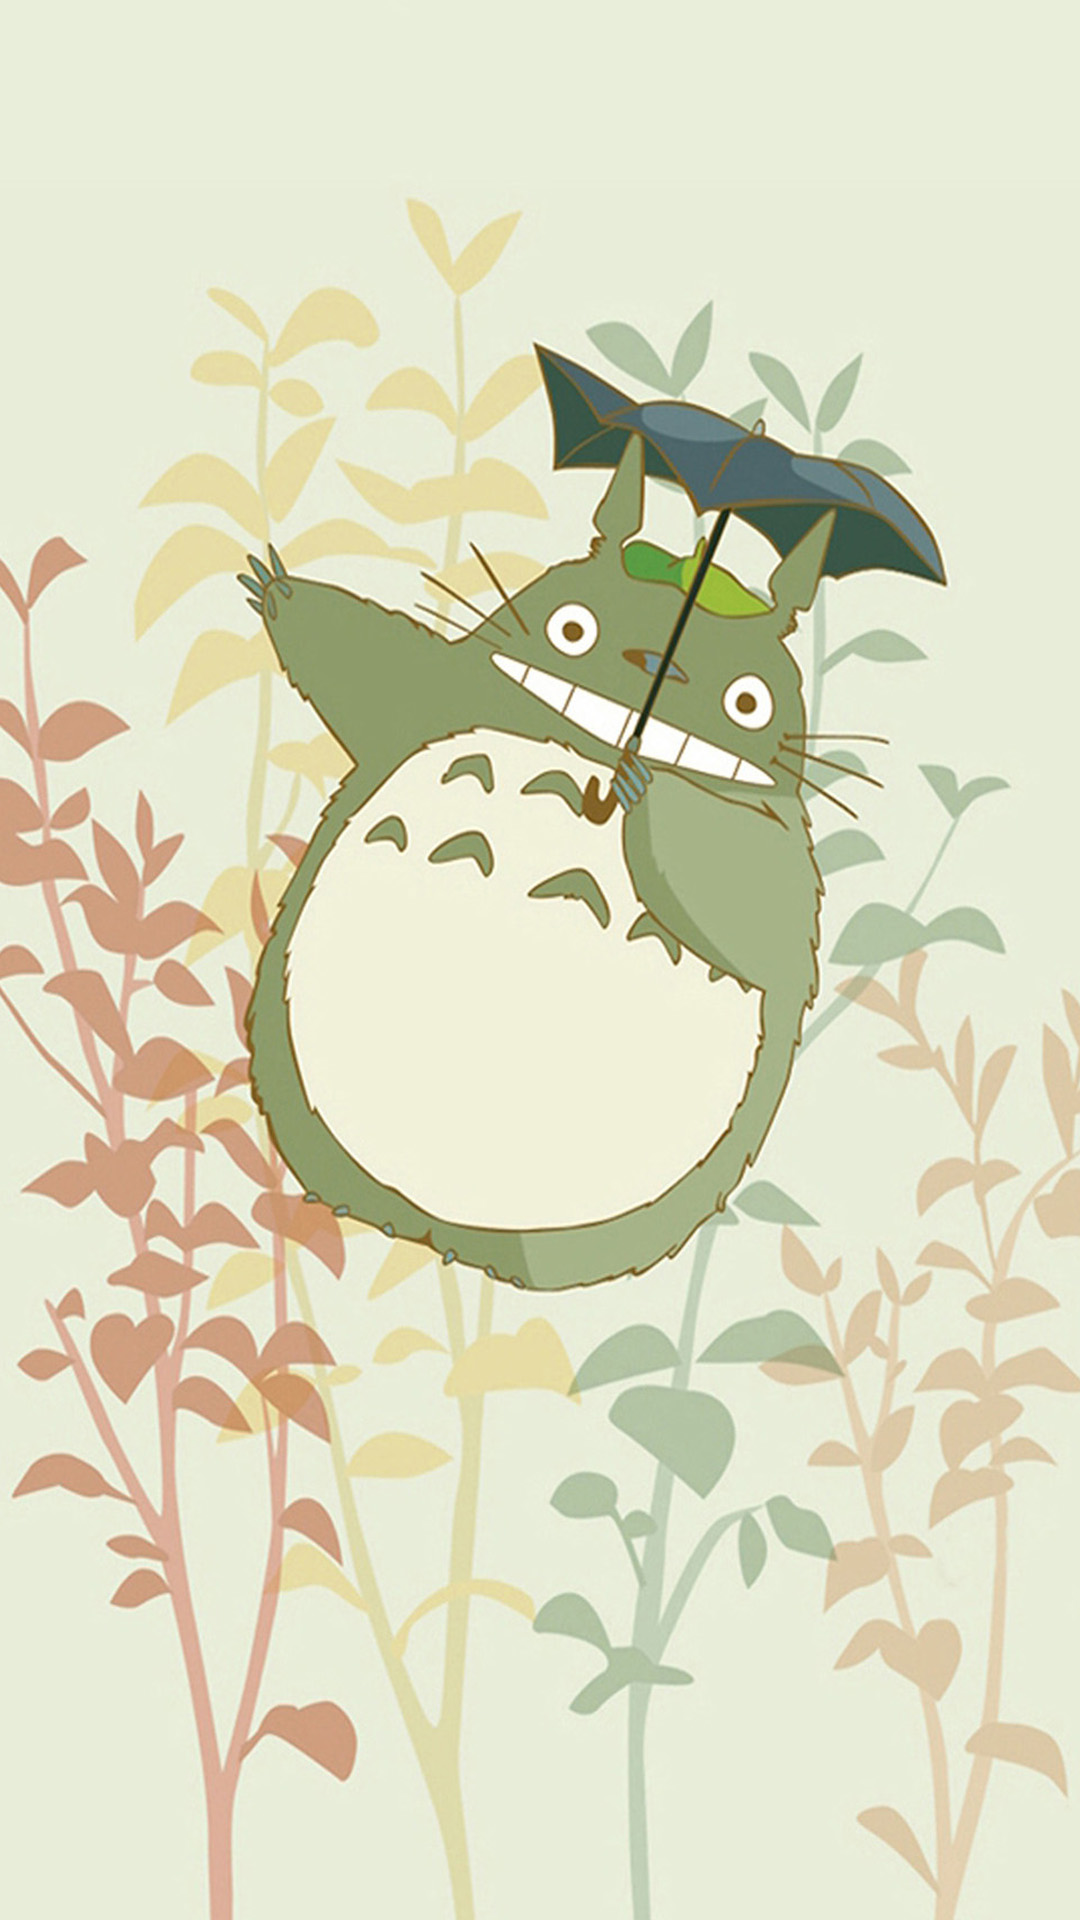 Anime Tonari No Totoro Iphone Wallpaper